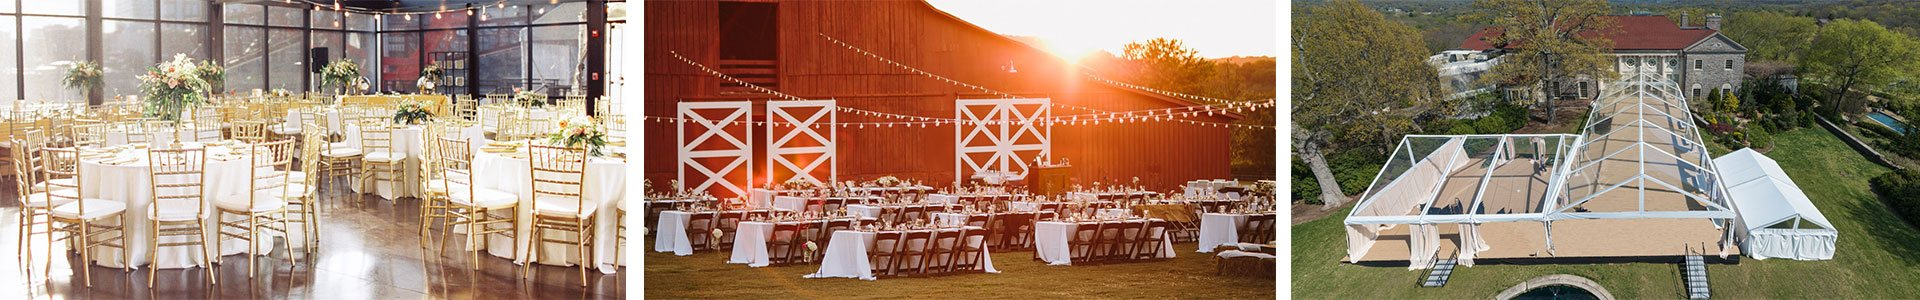 Party Rentals In Nashville Tn Event Rentals In Middle Tennessee